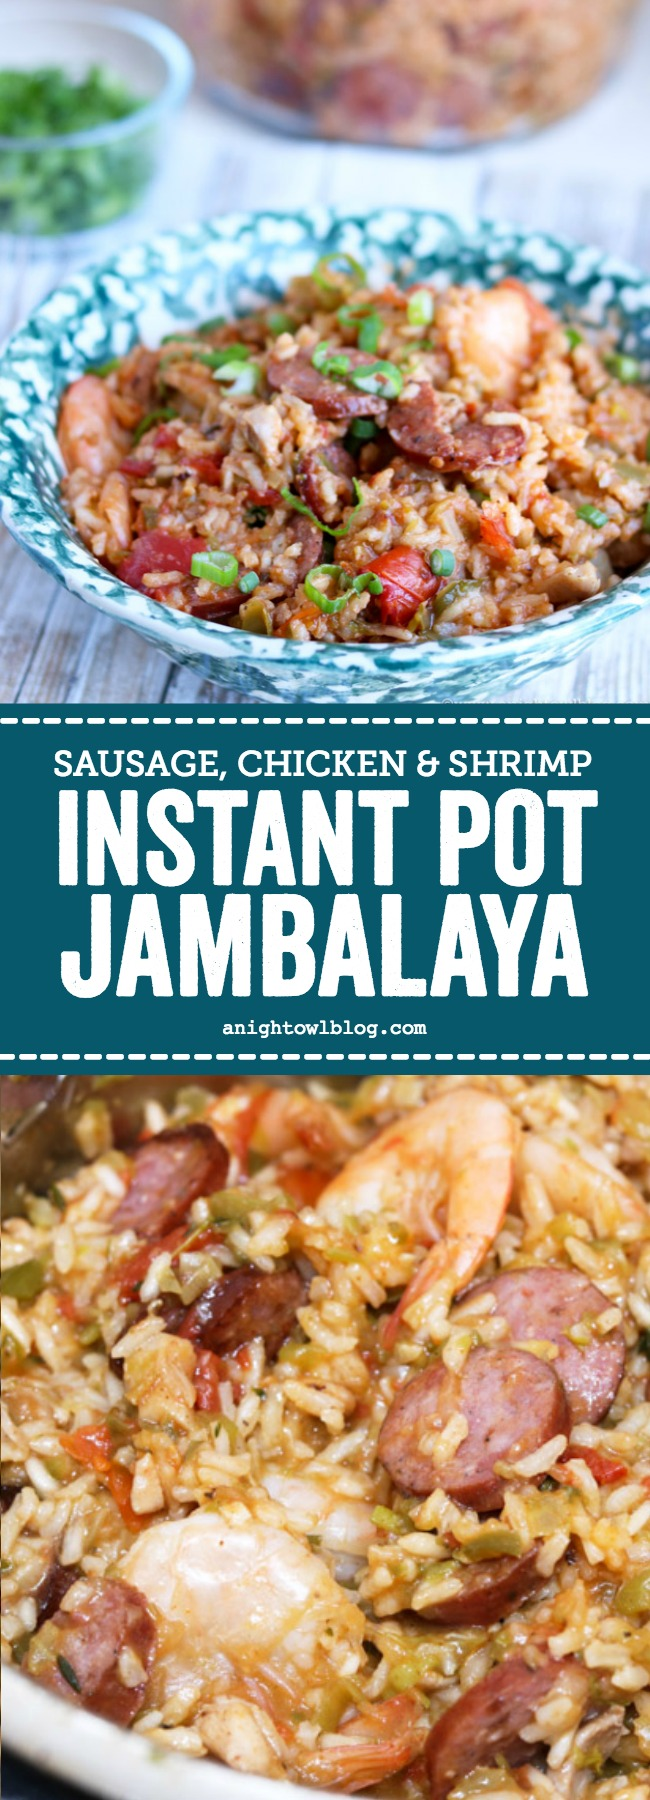 Made with chicken, sausage, shrimp and vegetables, this Instant Pot Jambalaya is a quick and hearty pressure cooker meal your family will love! #InstantPot #PressureCooker #JambalayaRecipe